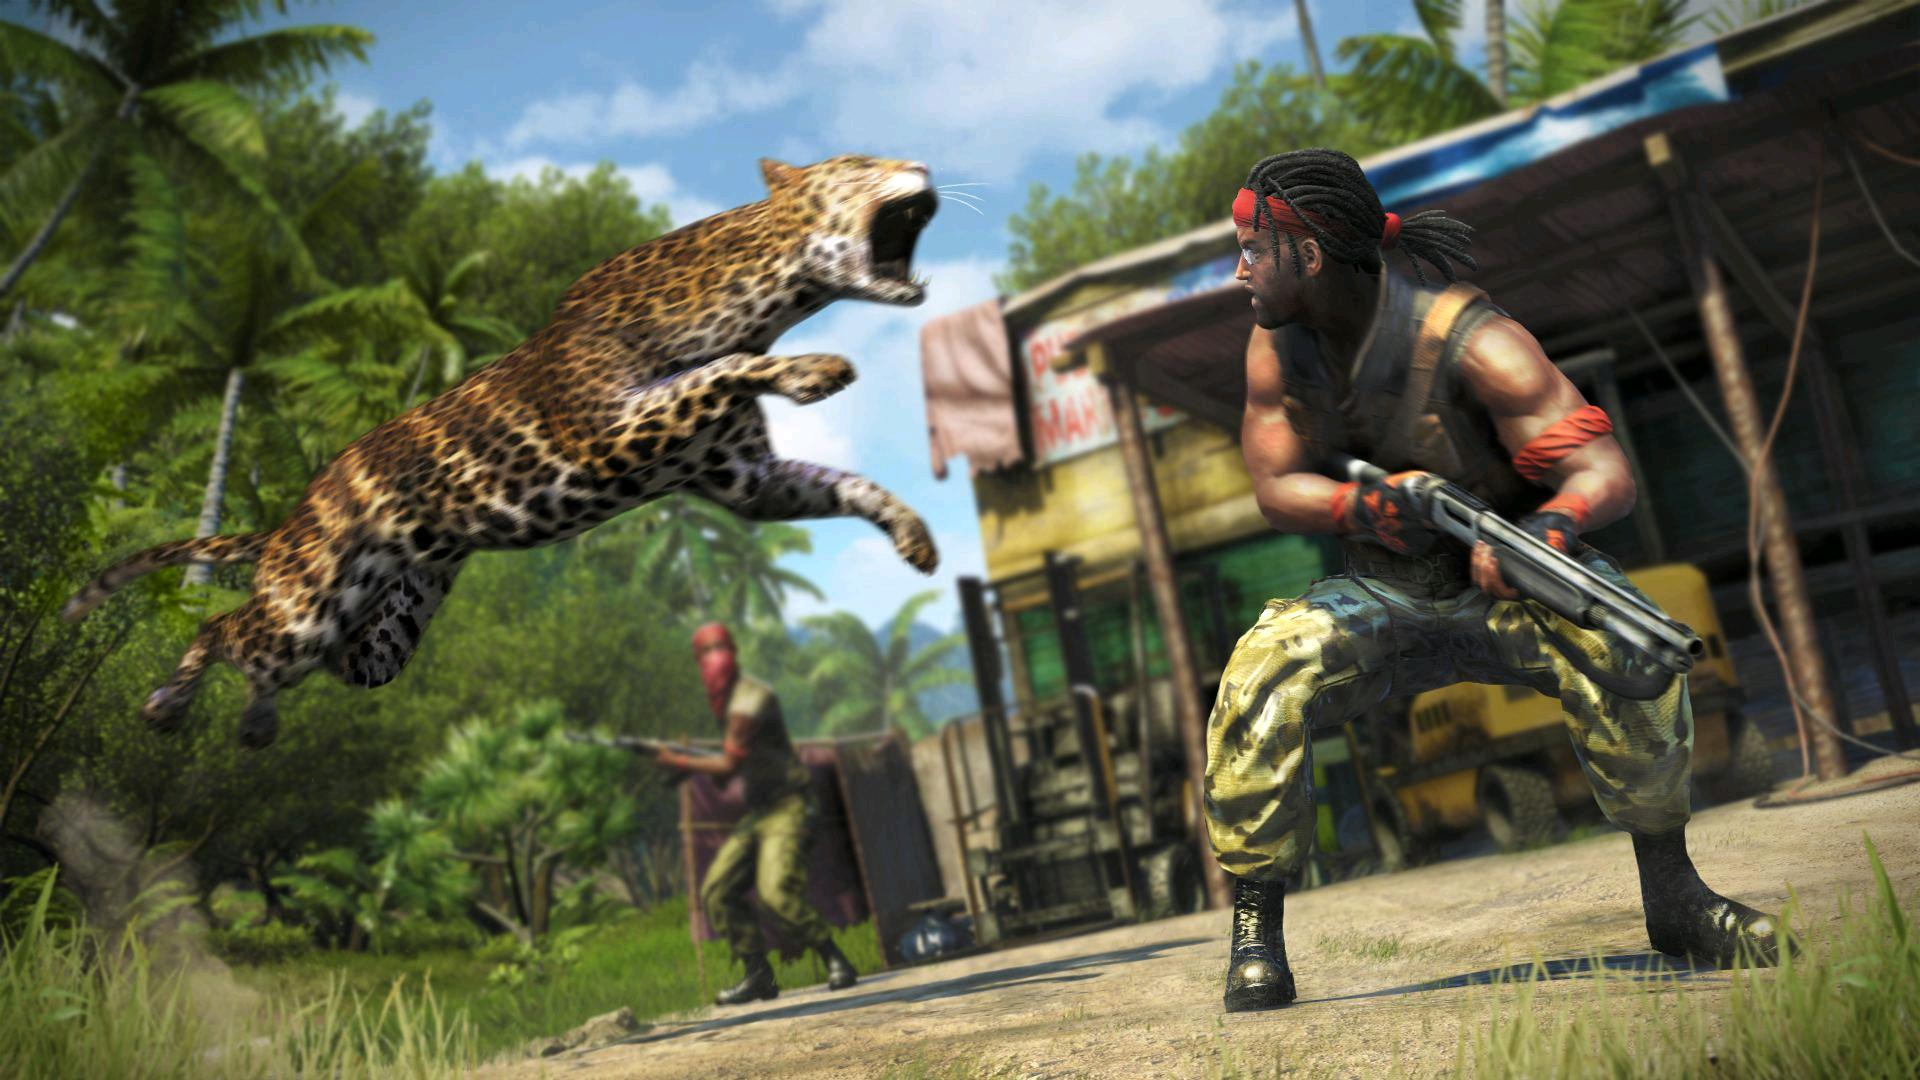 Far Cry 3 Outpost Tiger Attack The Reticule